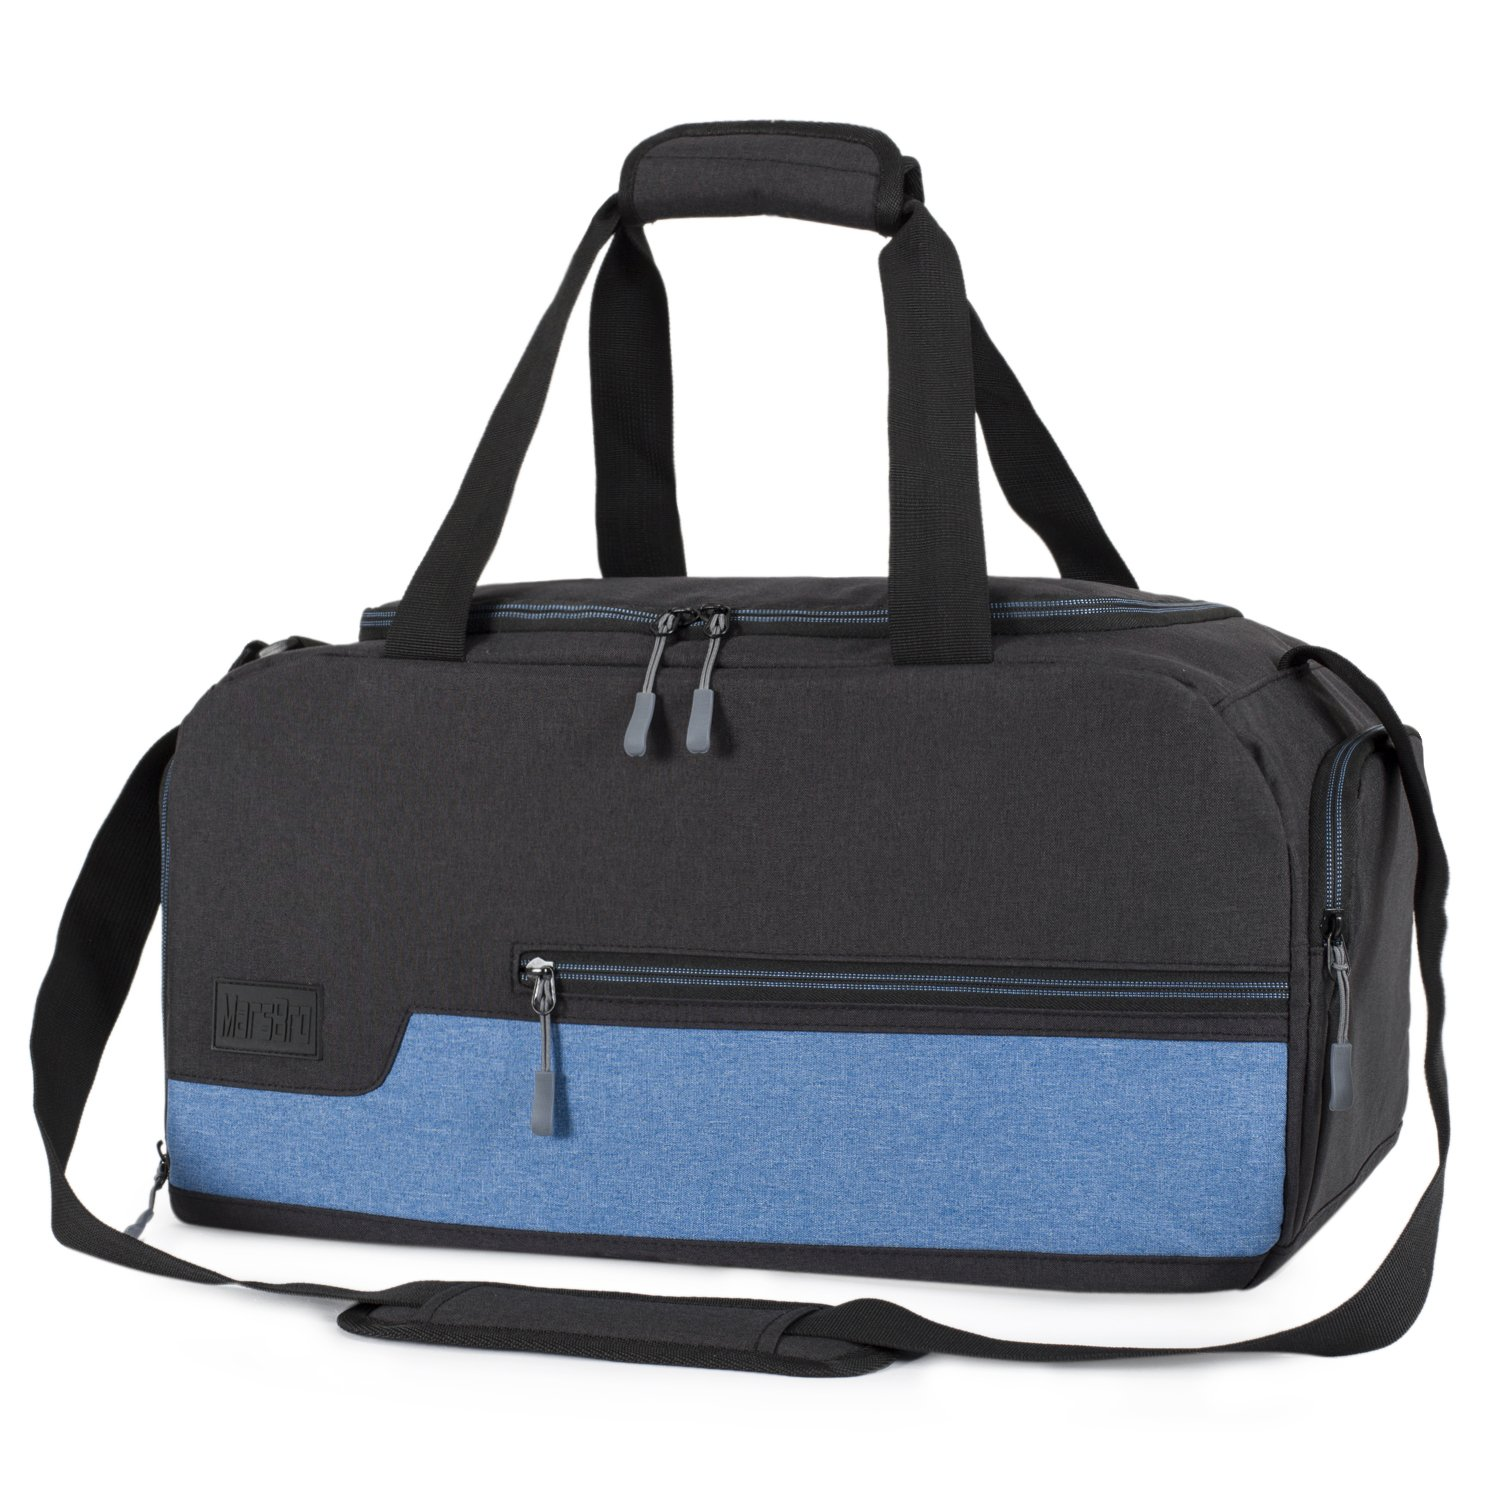 Gym Bag Jalandhar: Marsbro Water Resistant Polyester Sports Gym Travel